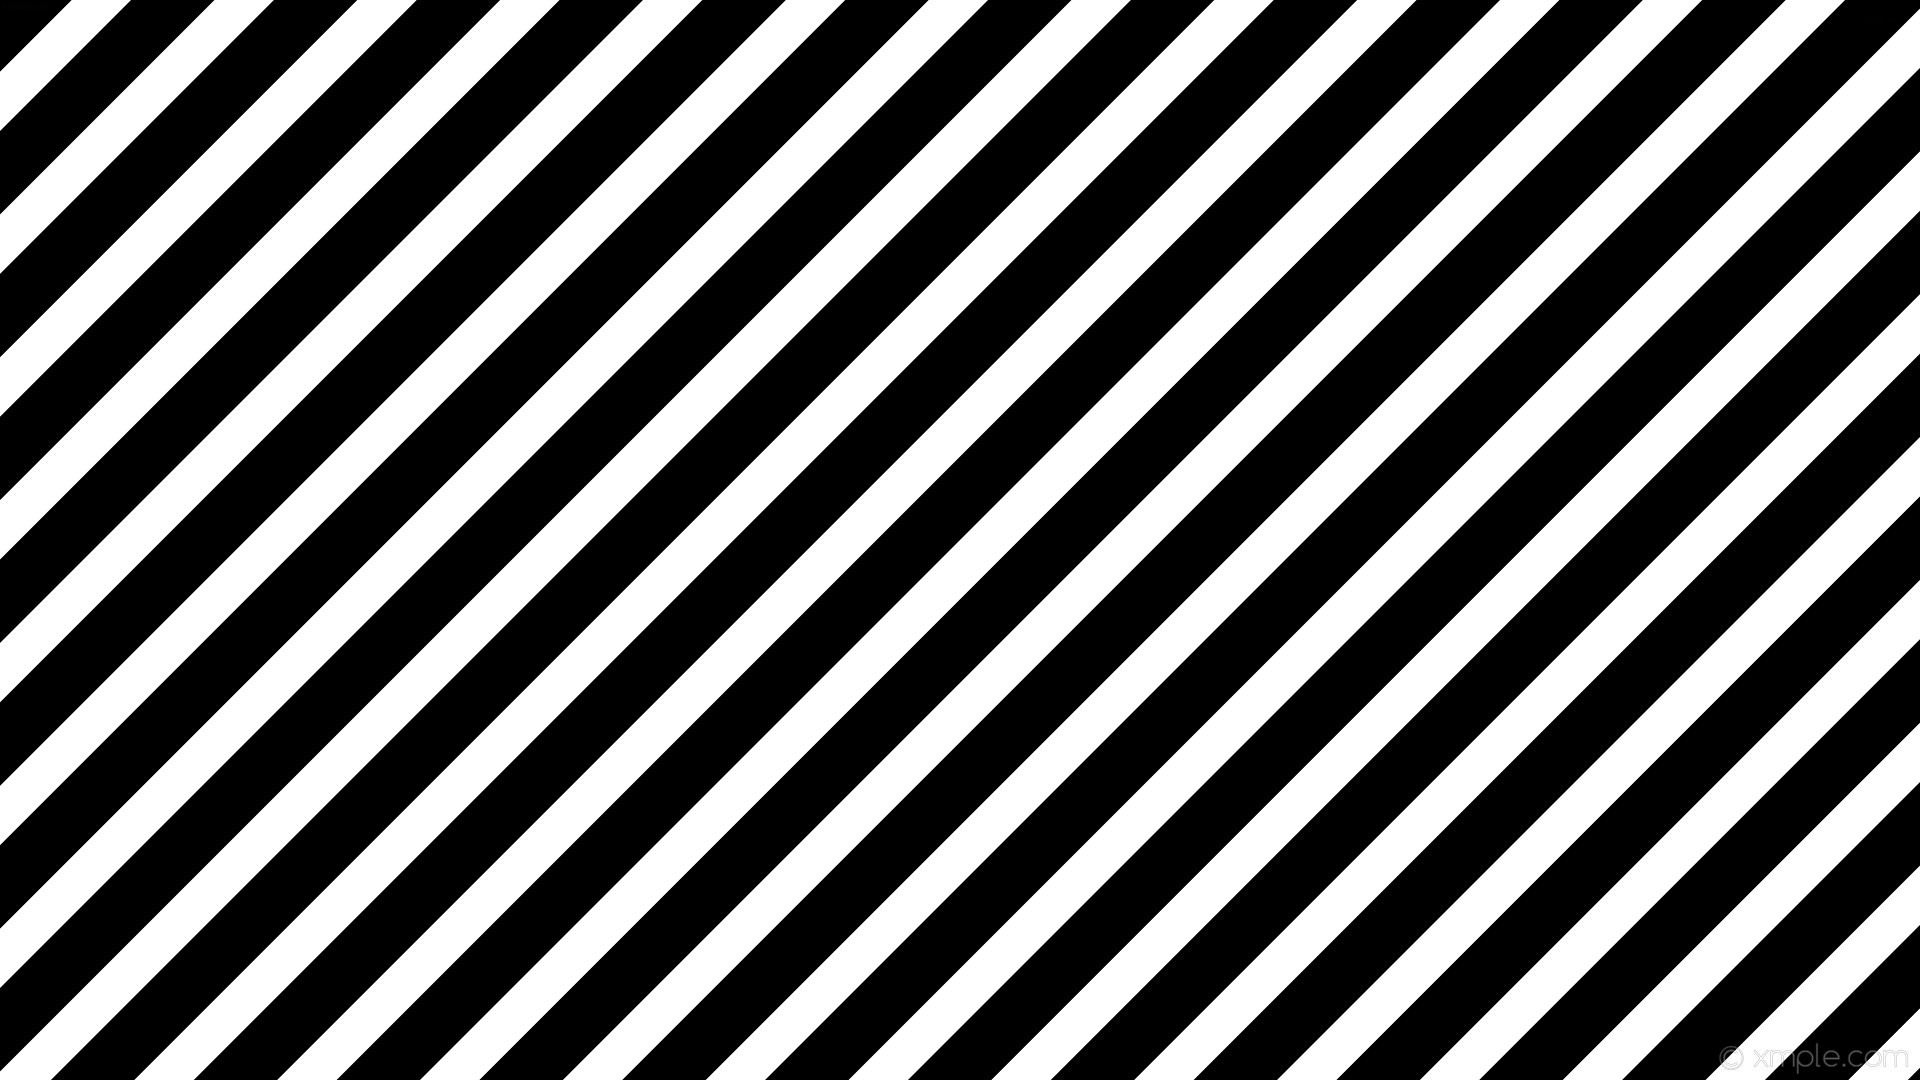 1920x1080 Black And White Lines Wallpaper